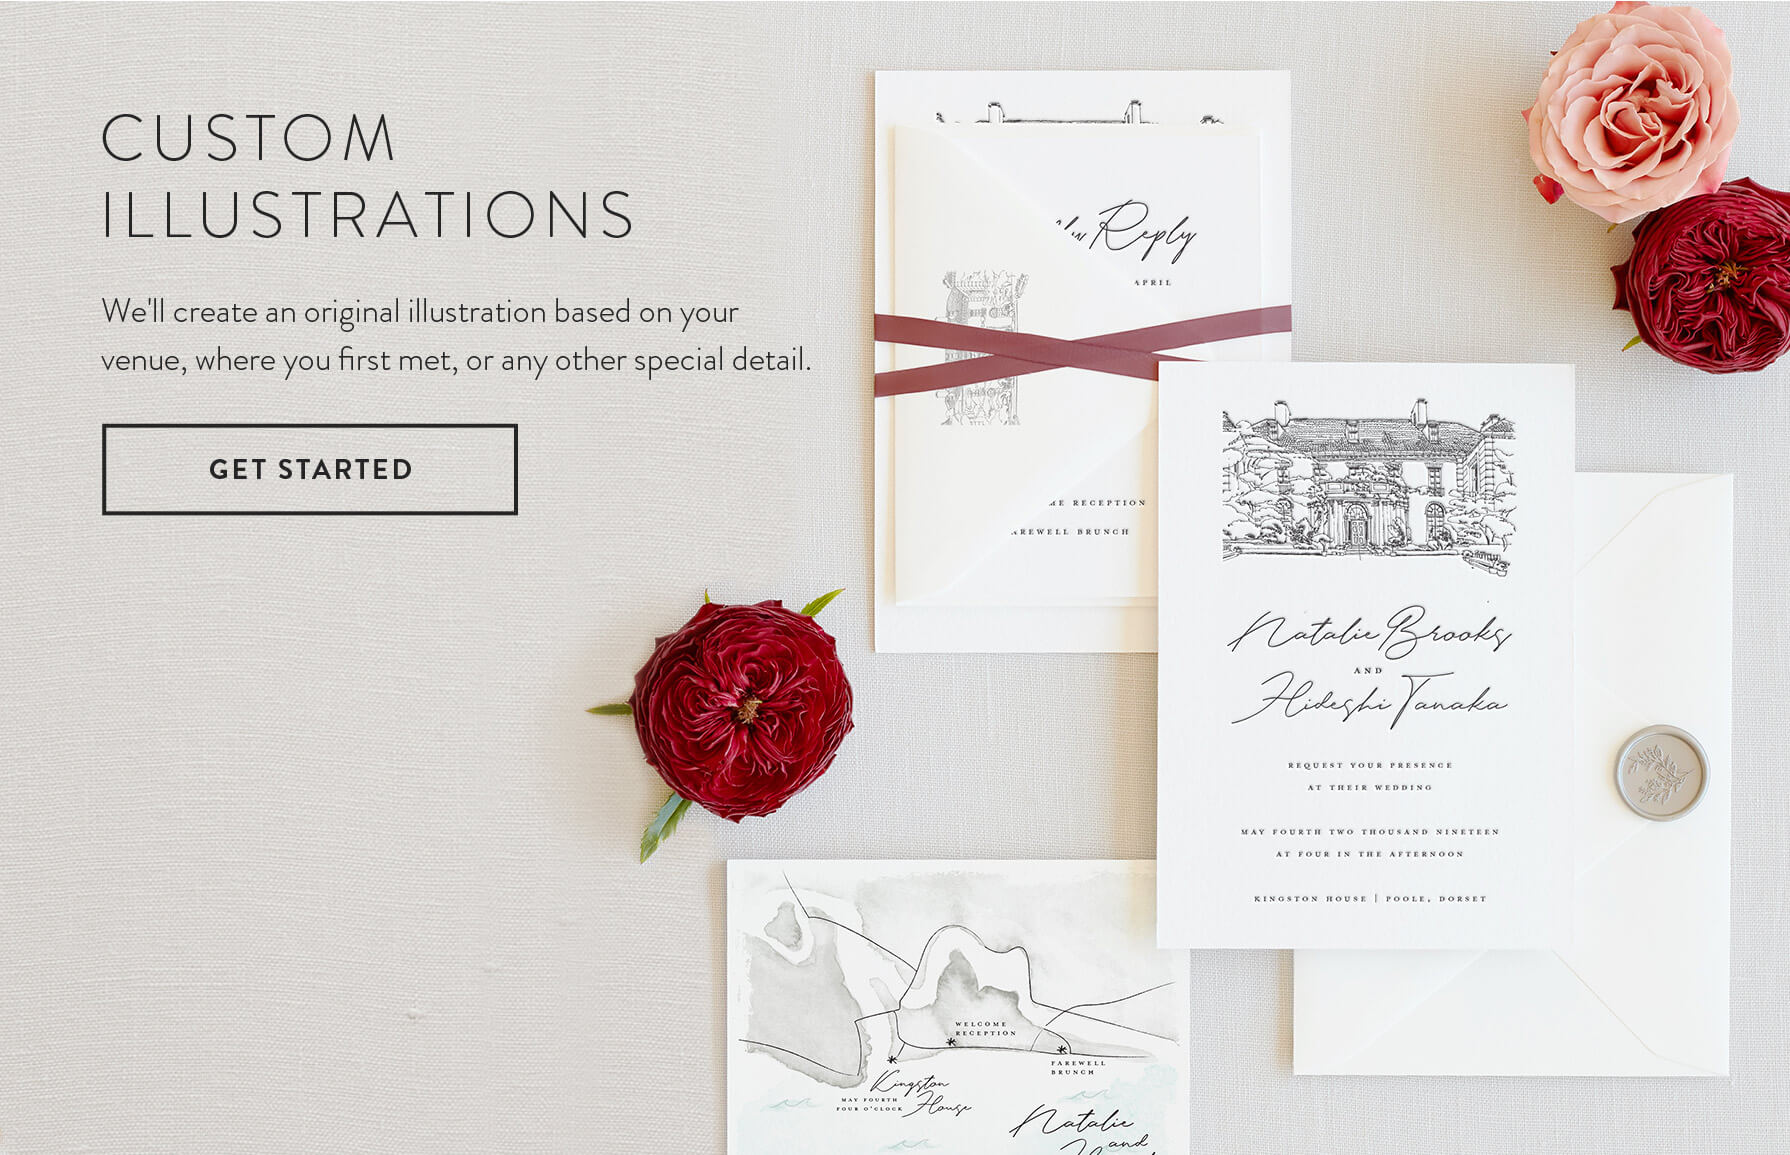 Get Started with Commissioned Illustrations